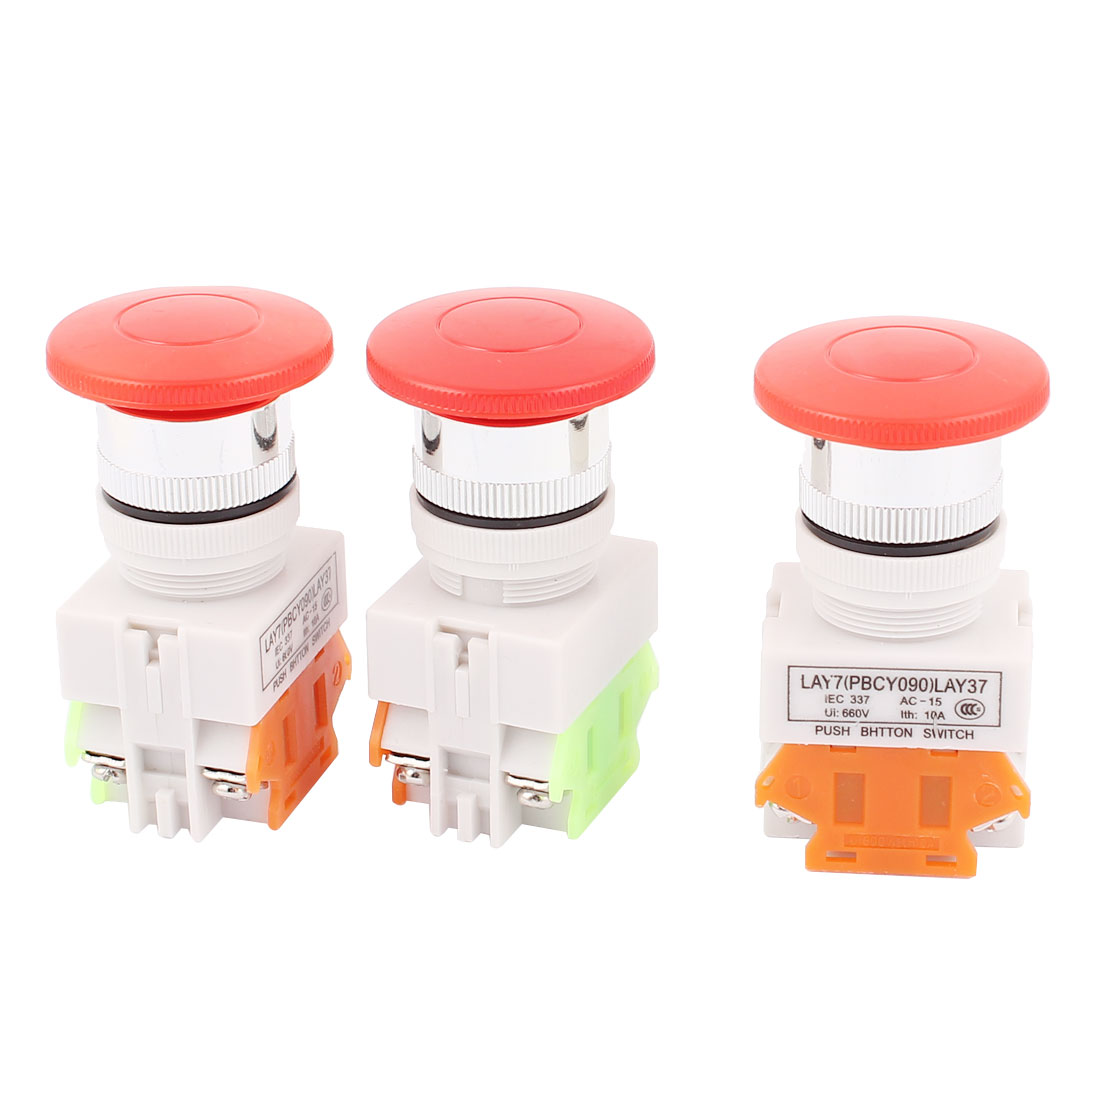 3pcs NO/NC 4 Screw Terminals Mushroom Emergency Stop Push Button Switch